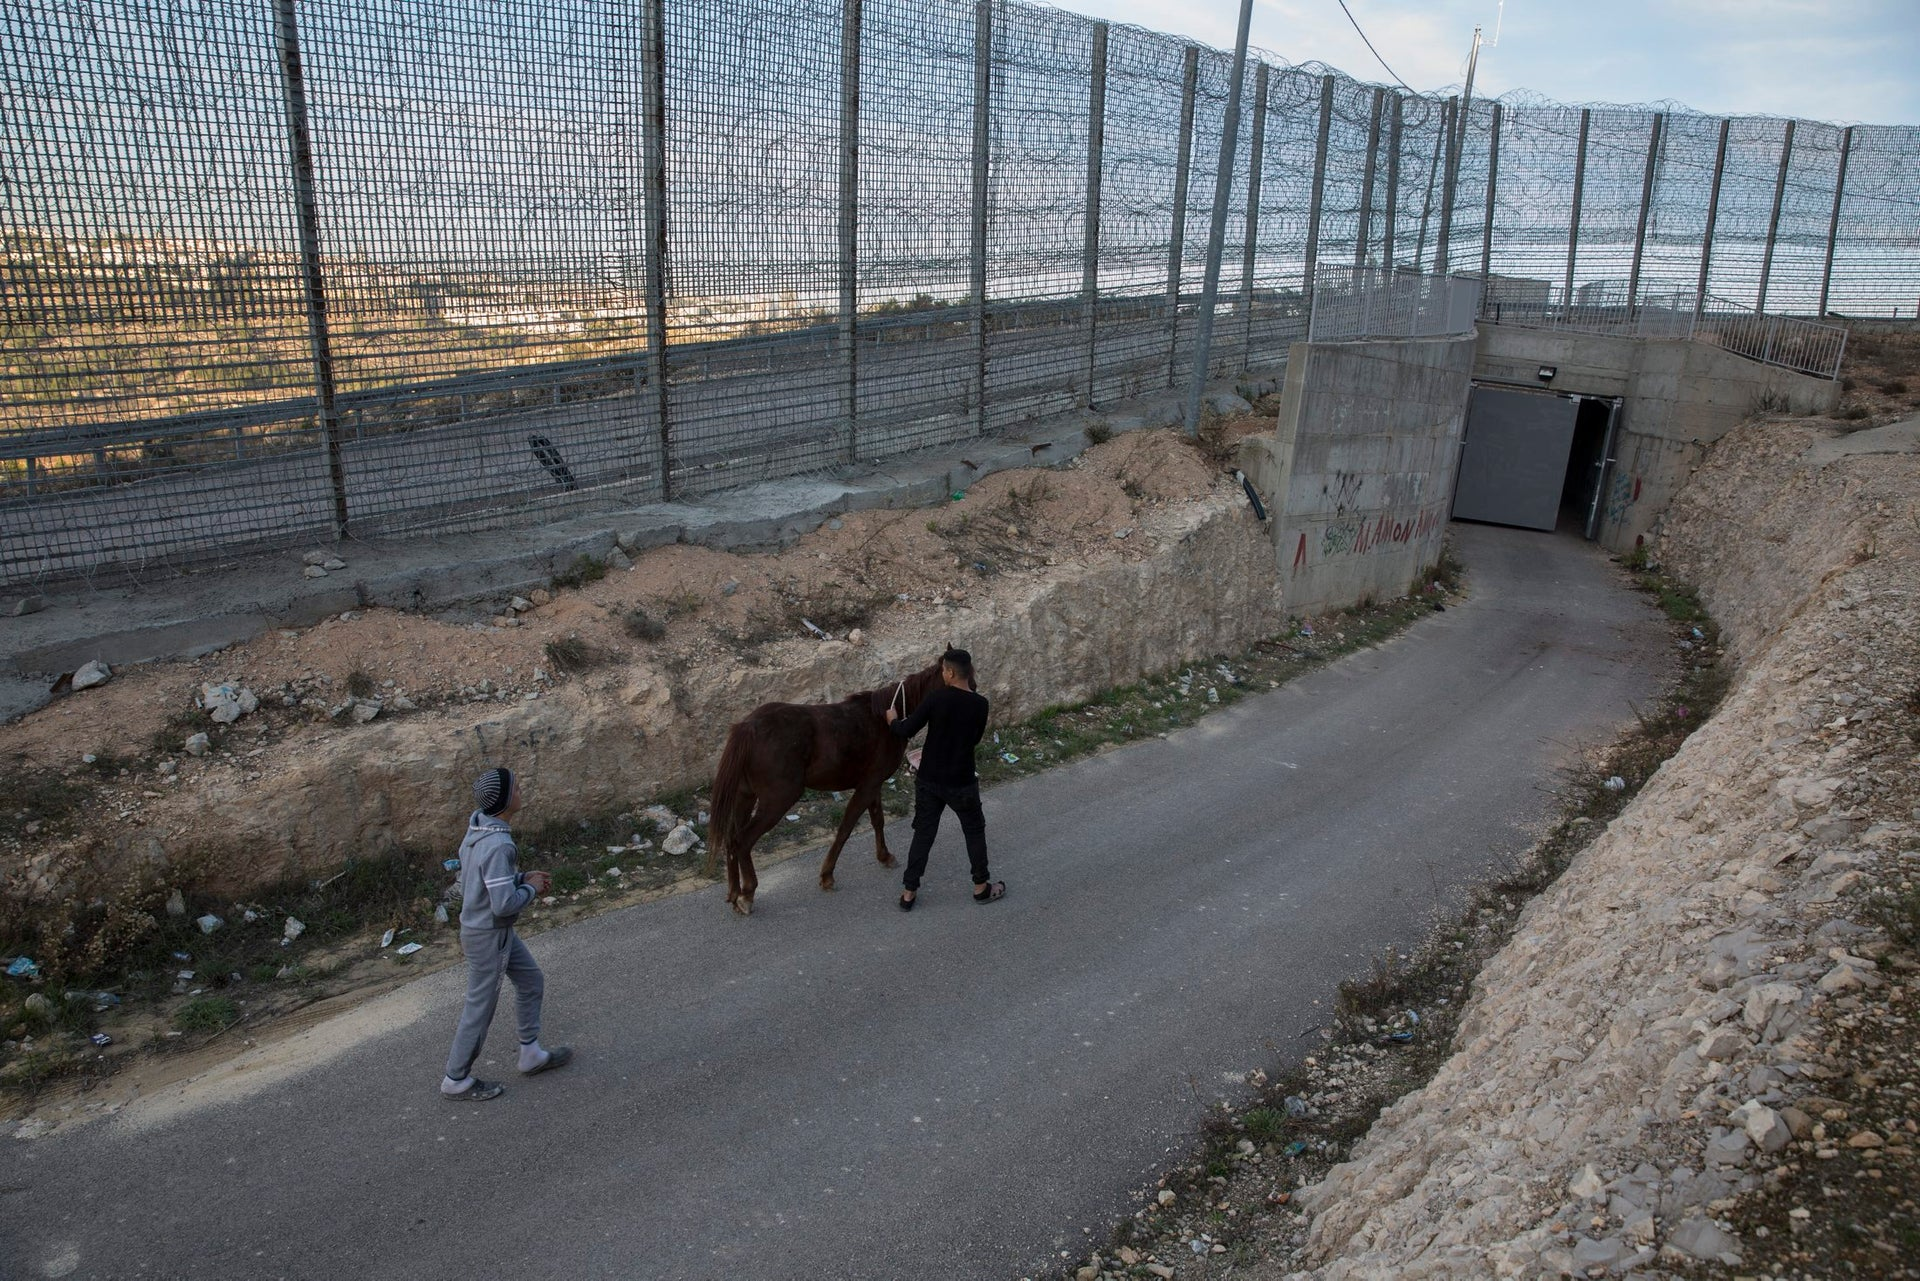 Boys walk with a horse toward the metal gate separating the Hajajleh home from the village of Al-Walaja, December 11, 2017.